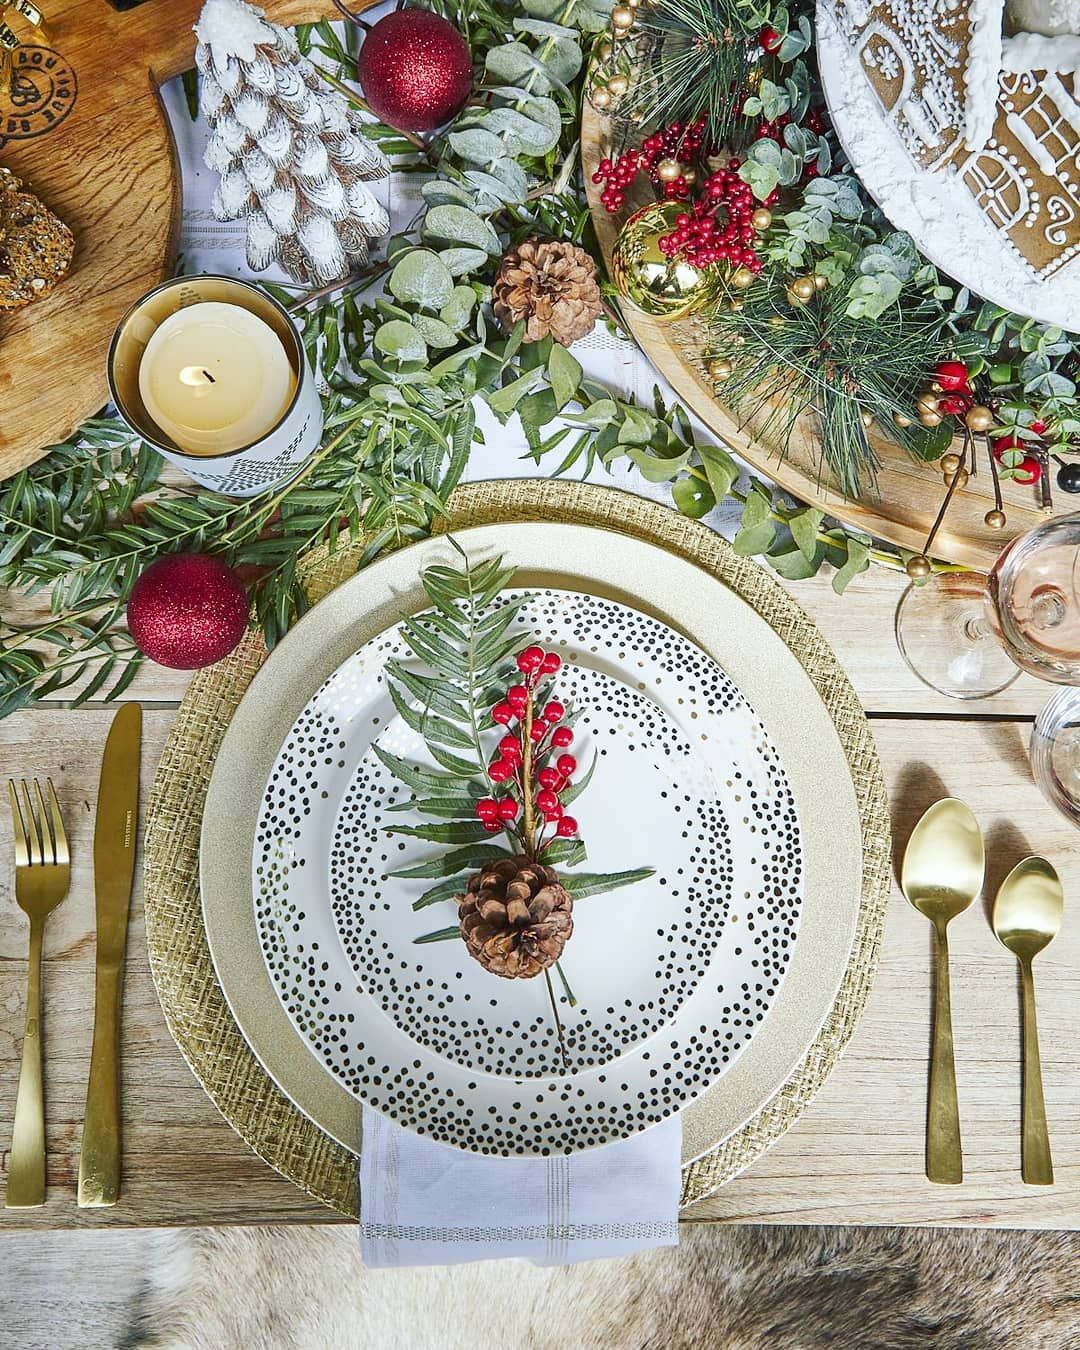 Christmas Decoration For Dining Room Page 39 Of 44 Christmas Table Decorations Christmas Table Settings Christmas Tableware